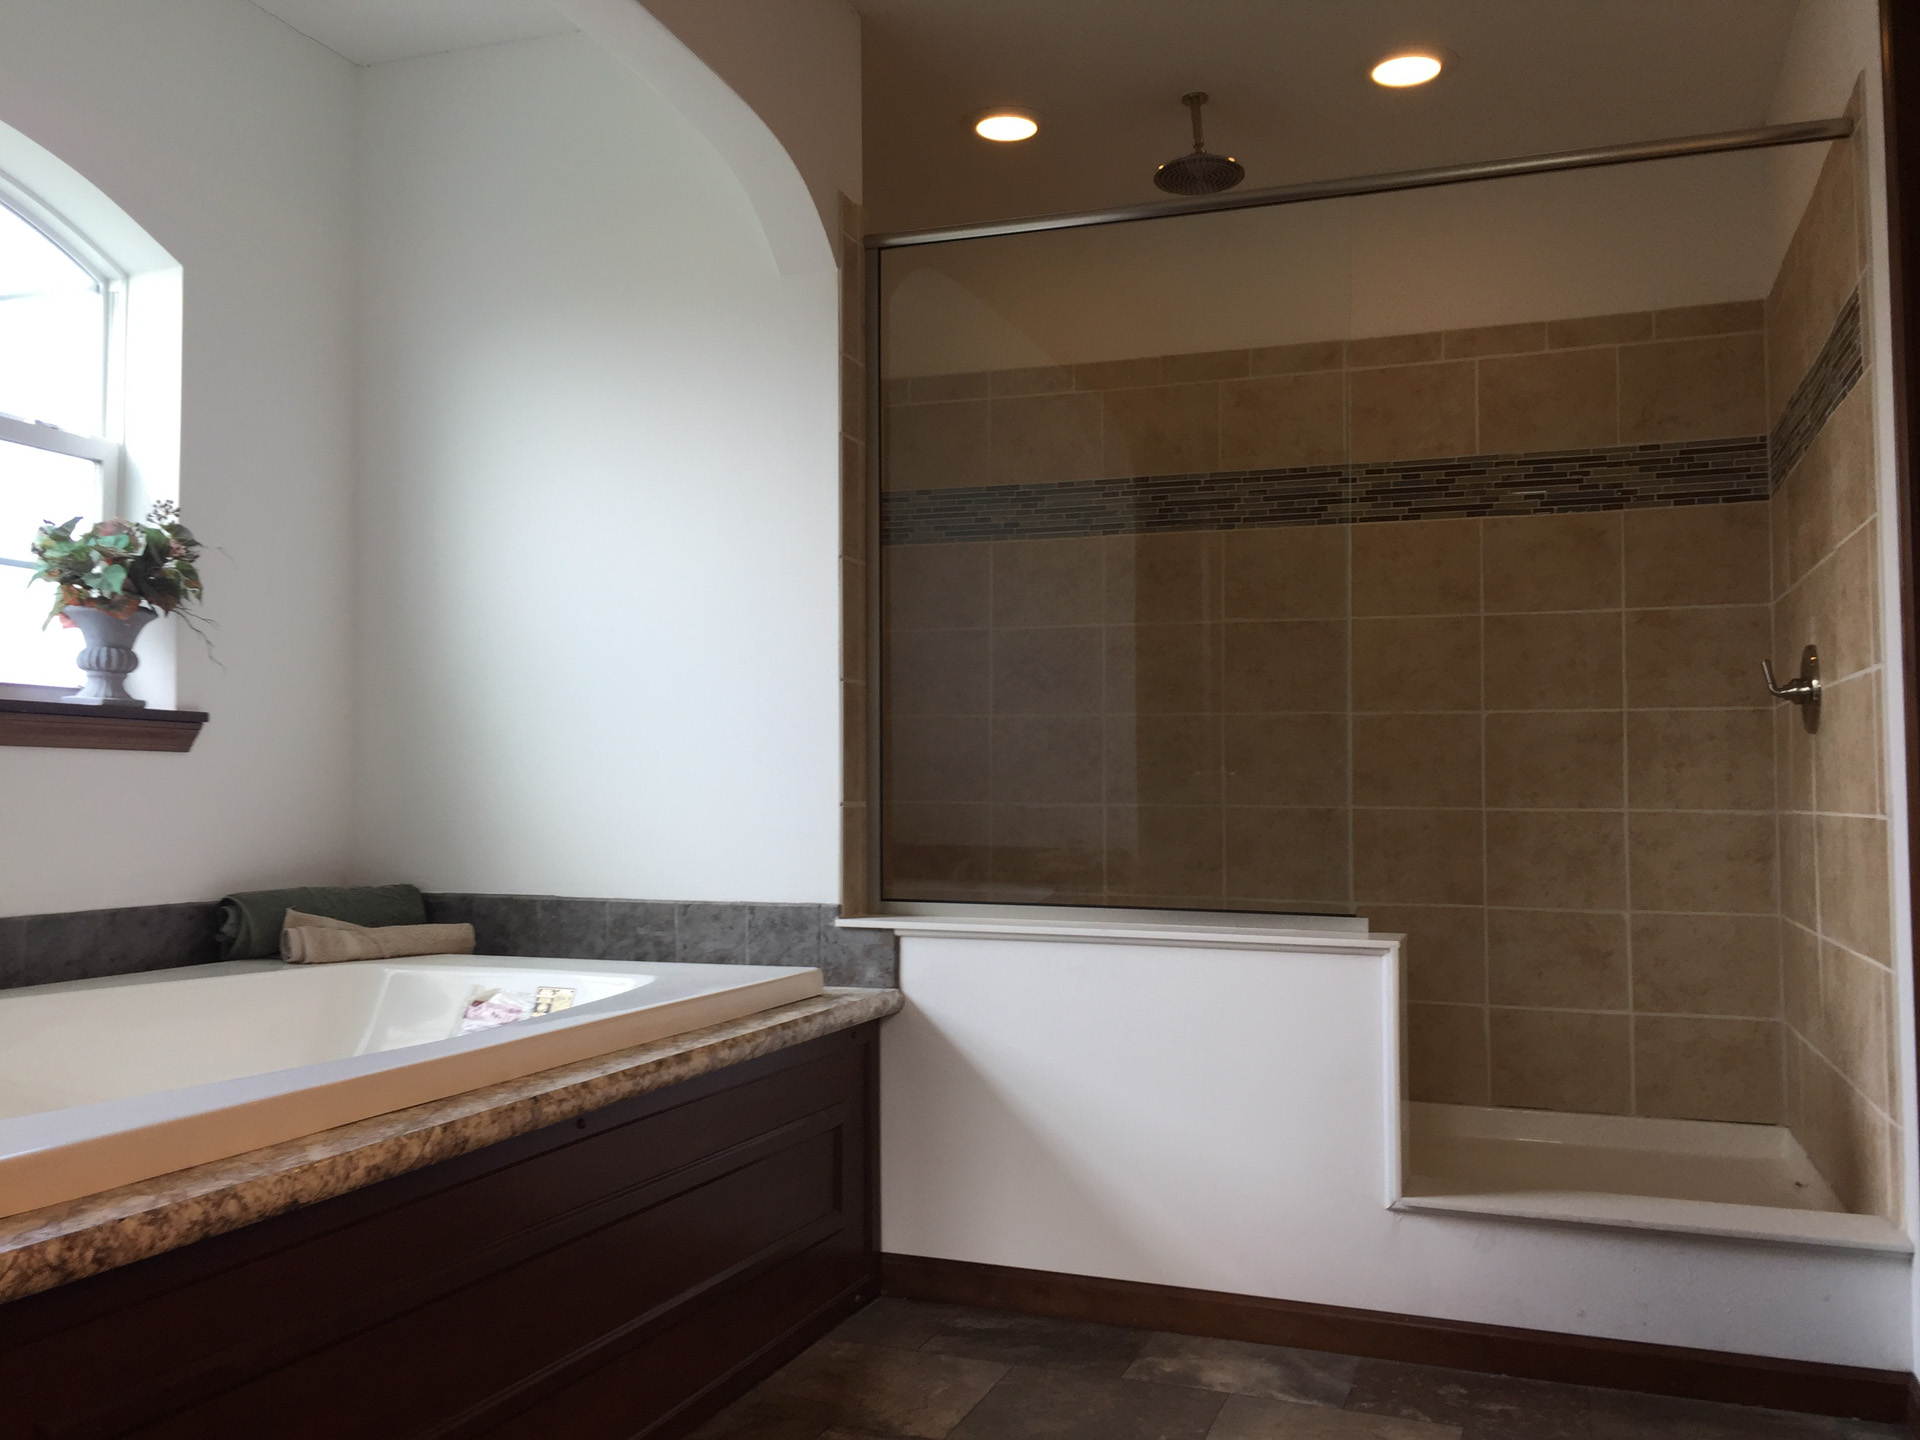 Lionel large tub and large walk-in shower - D&W Homes